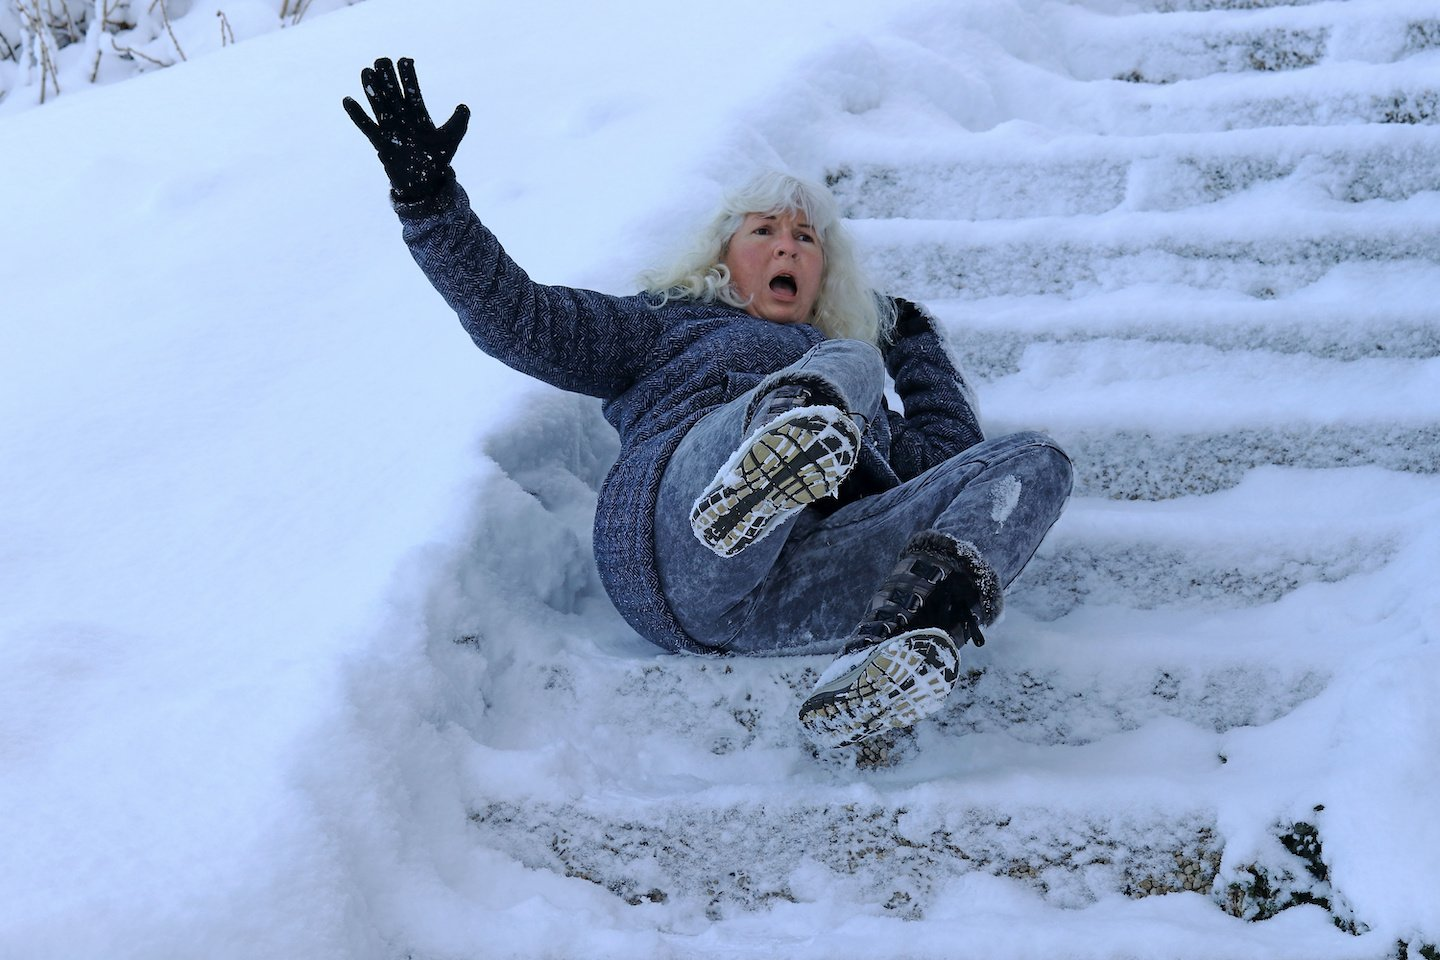 slip and fall on icy stairs